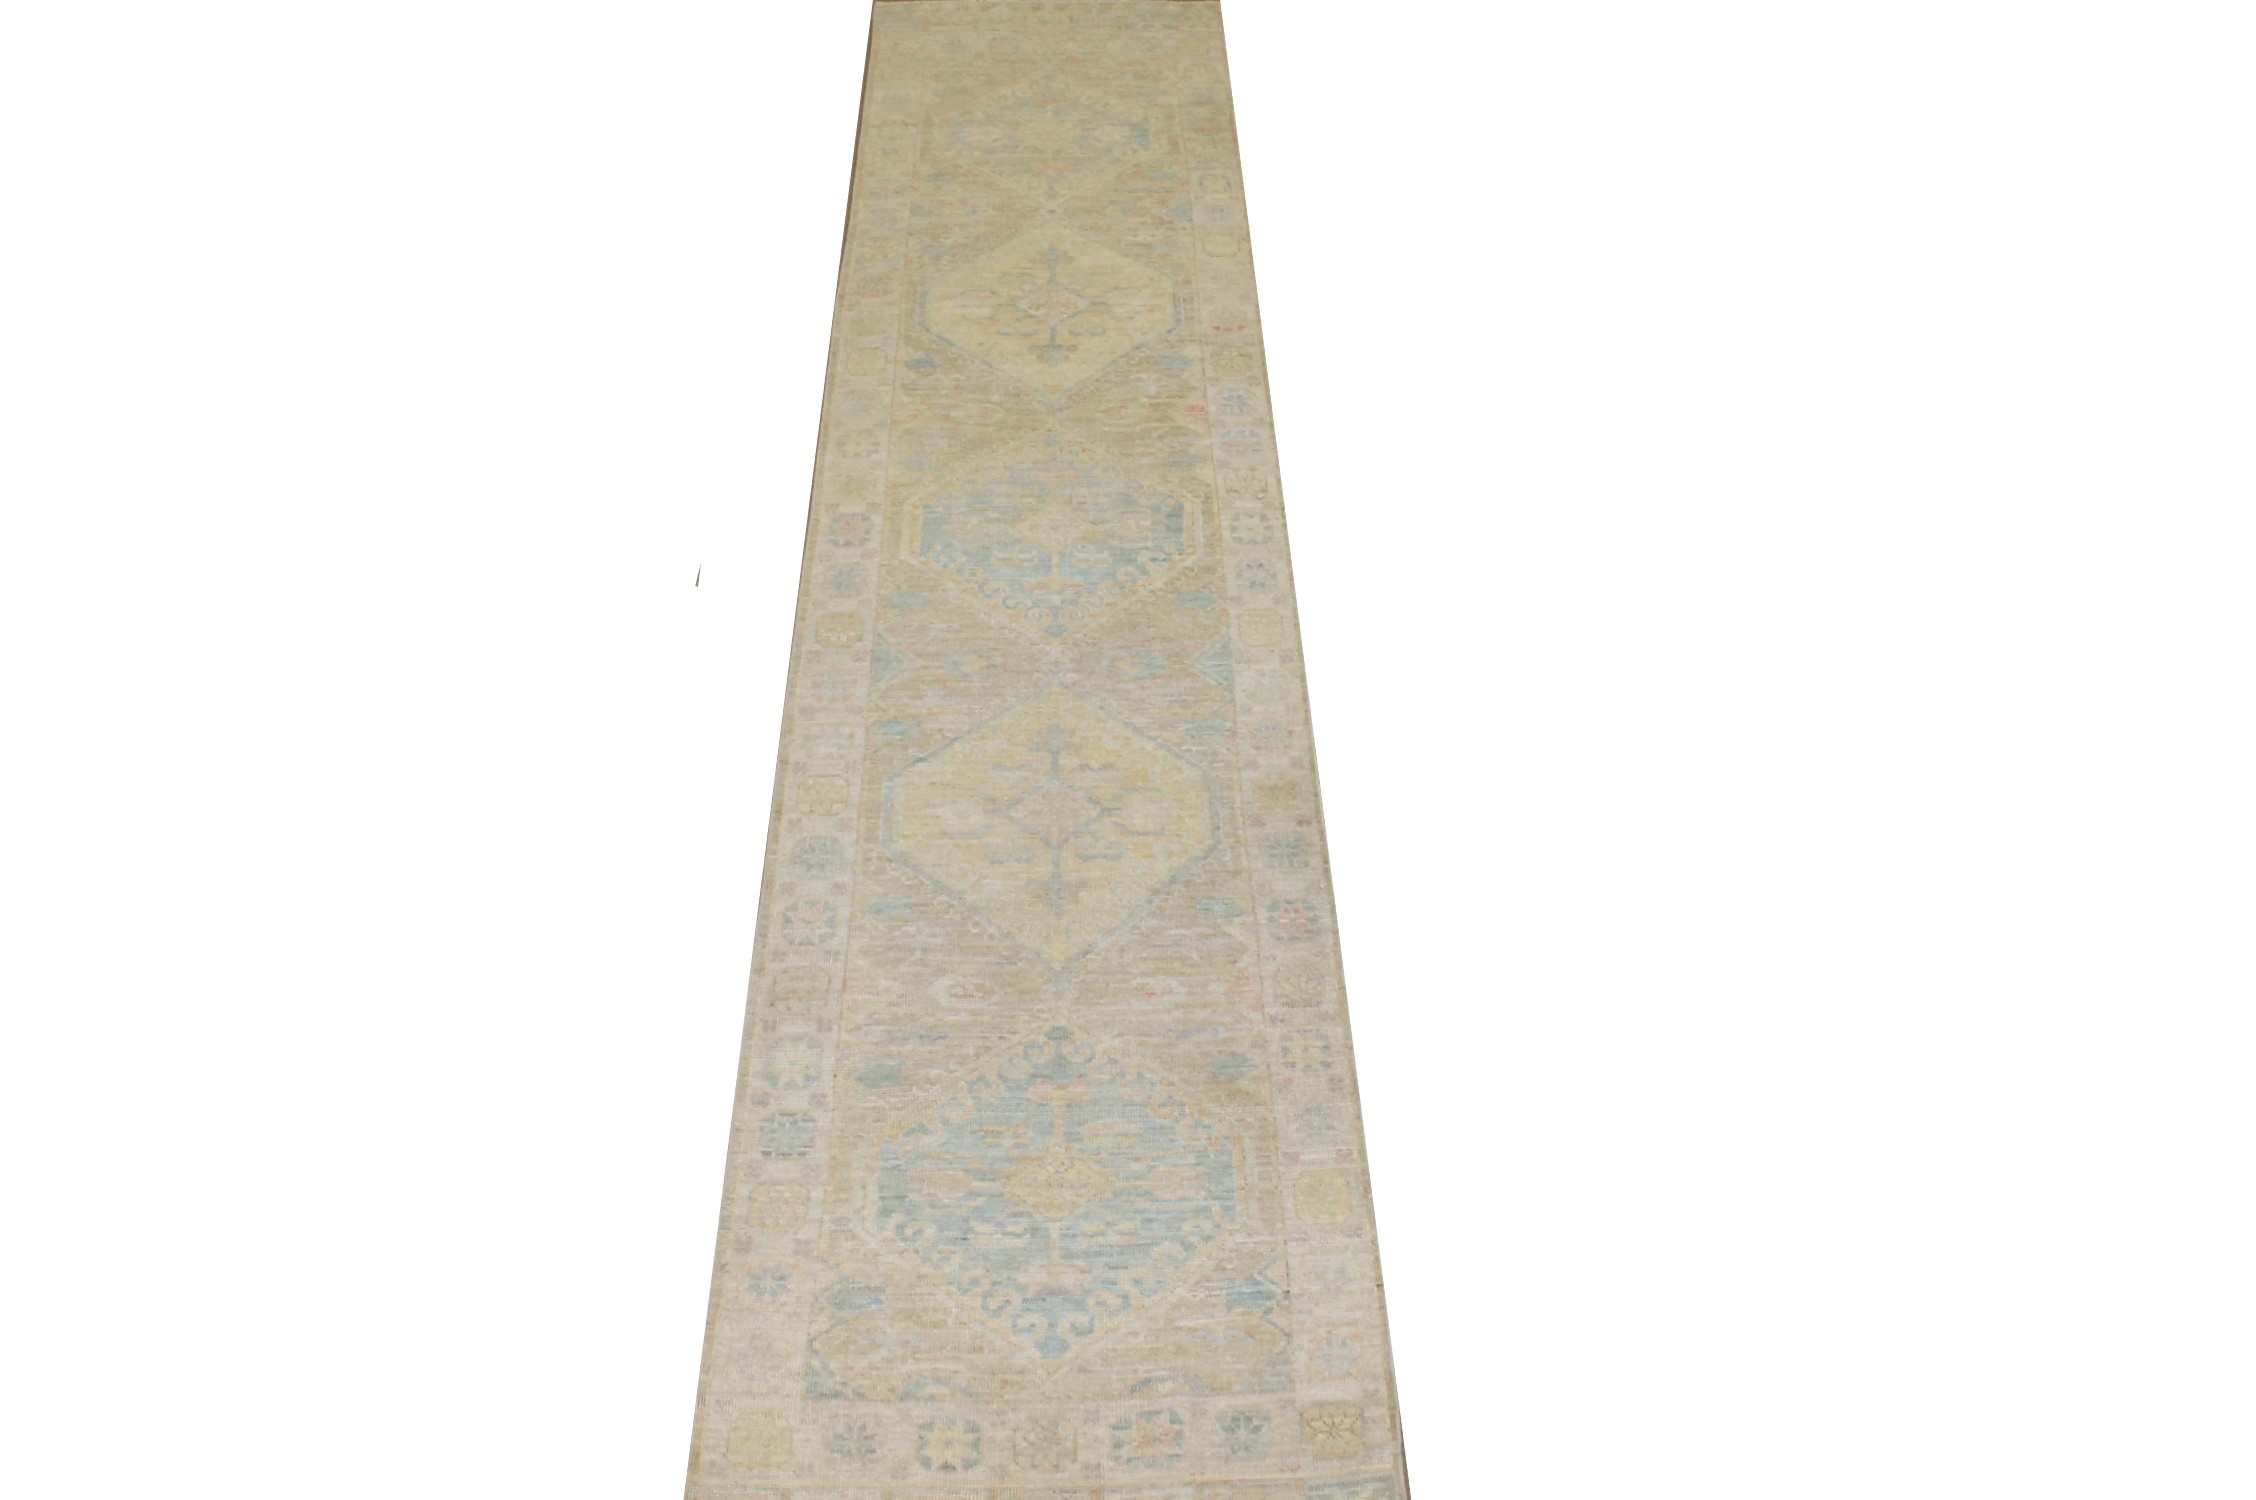 12 ft. Runner Oushak Hand Knotted Wool Area Rug - MR025173